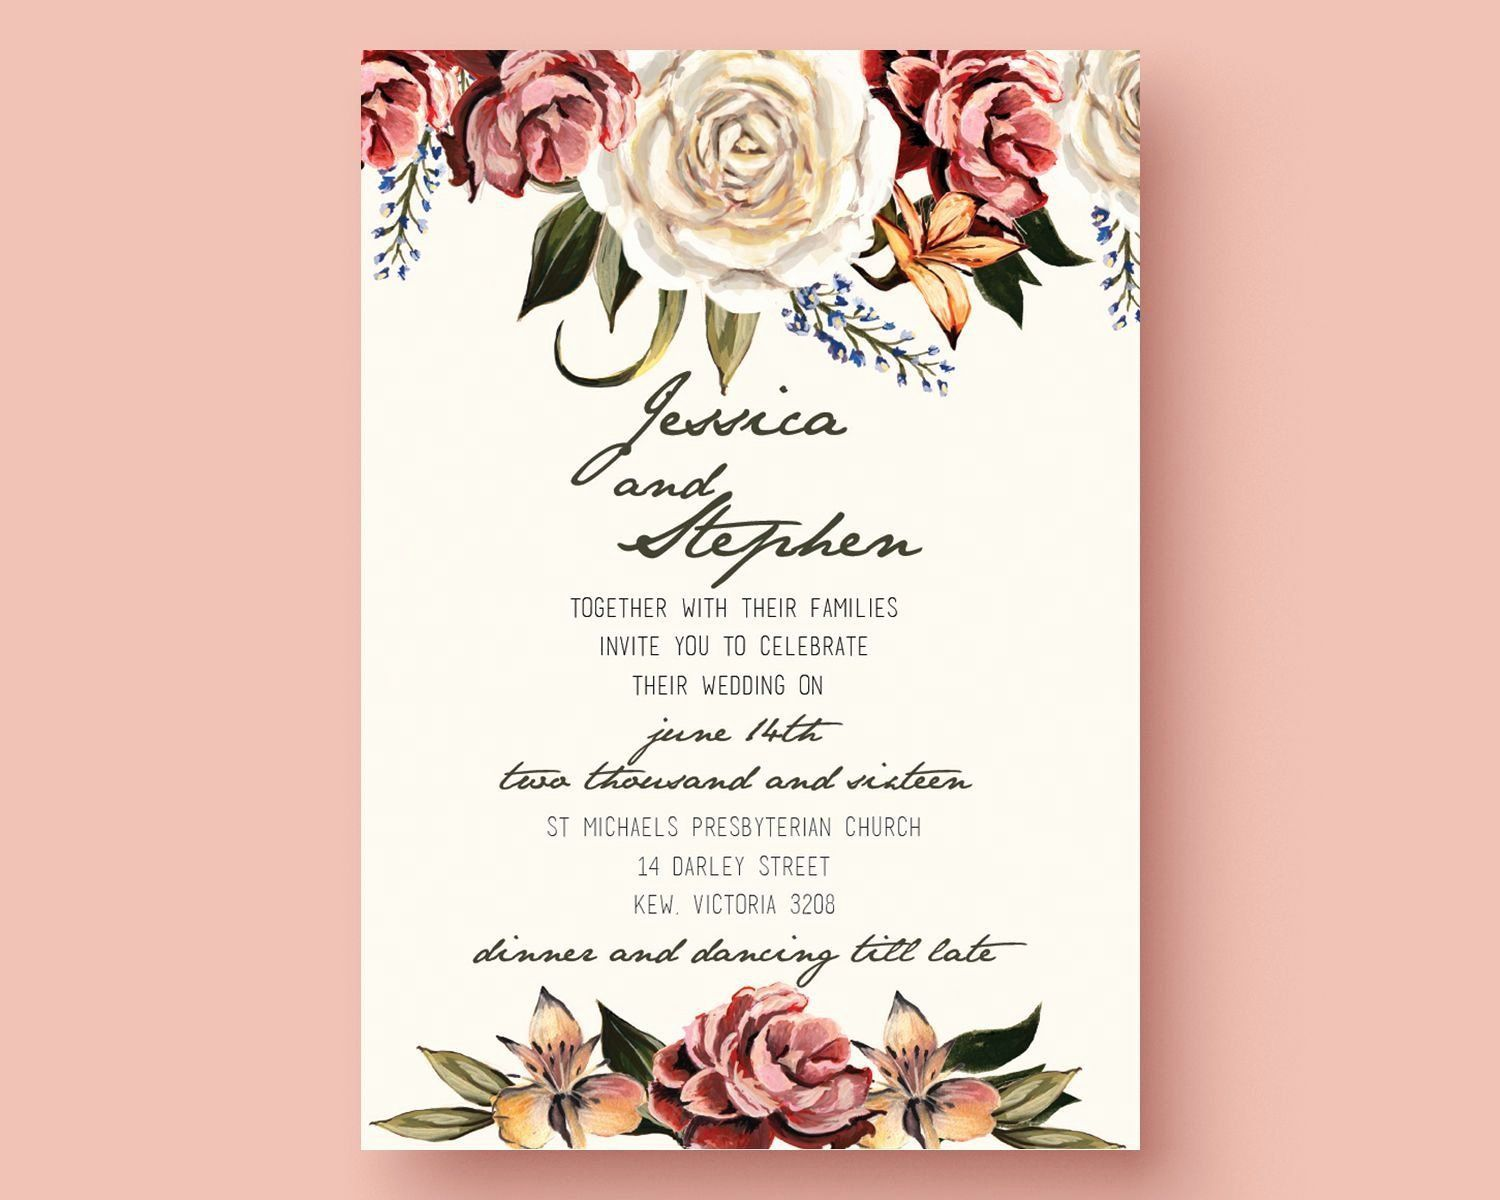 001 Unique Download Free Wedding Invitation Card Template Inspiration  Format Indian-traditional-wedding-invitation-card-psd-template-free-downloadFull